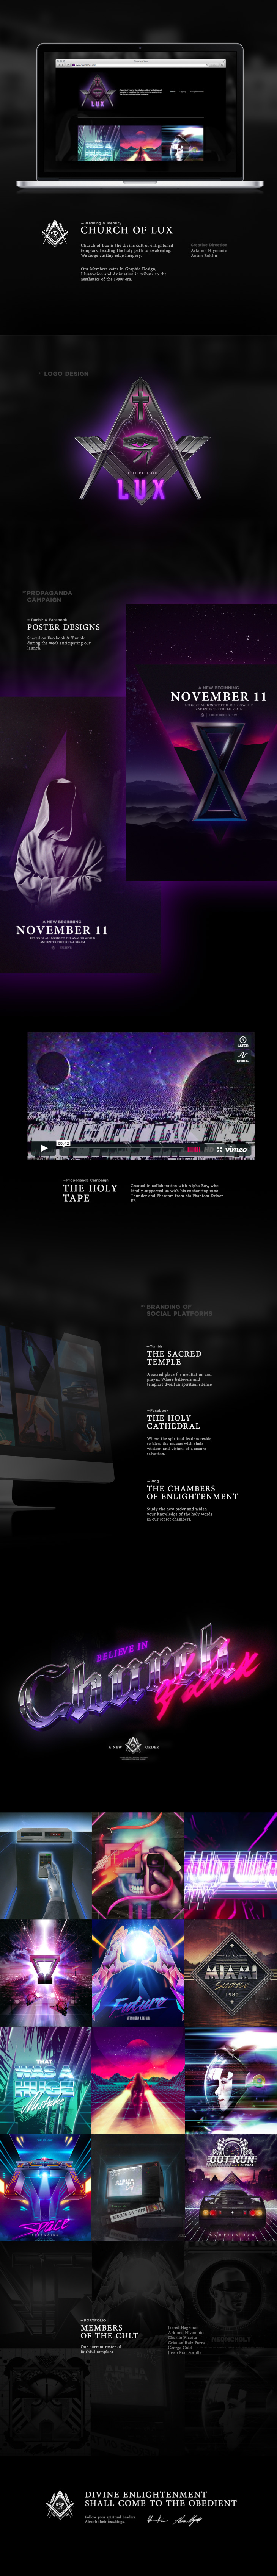 Church of Lux Behance